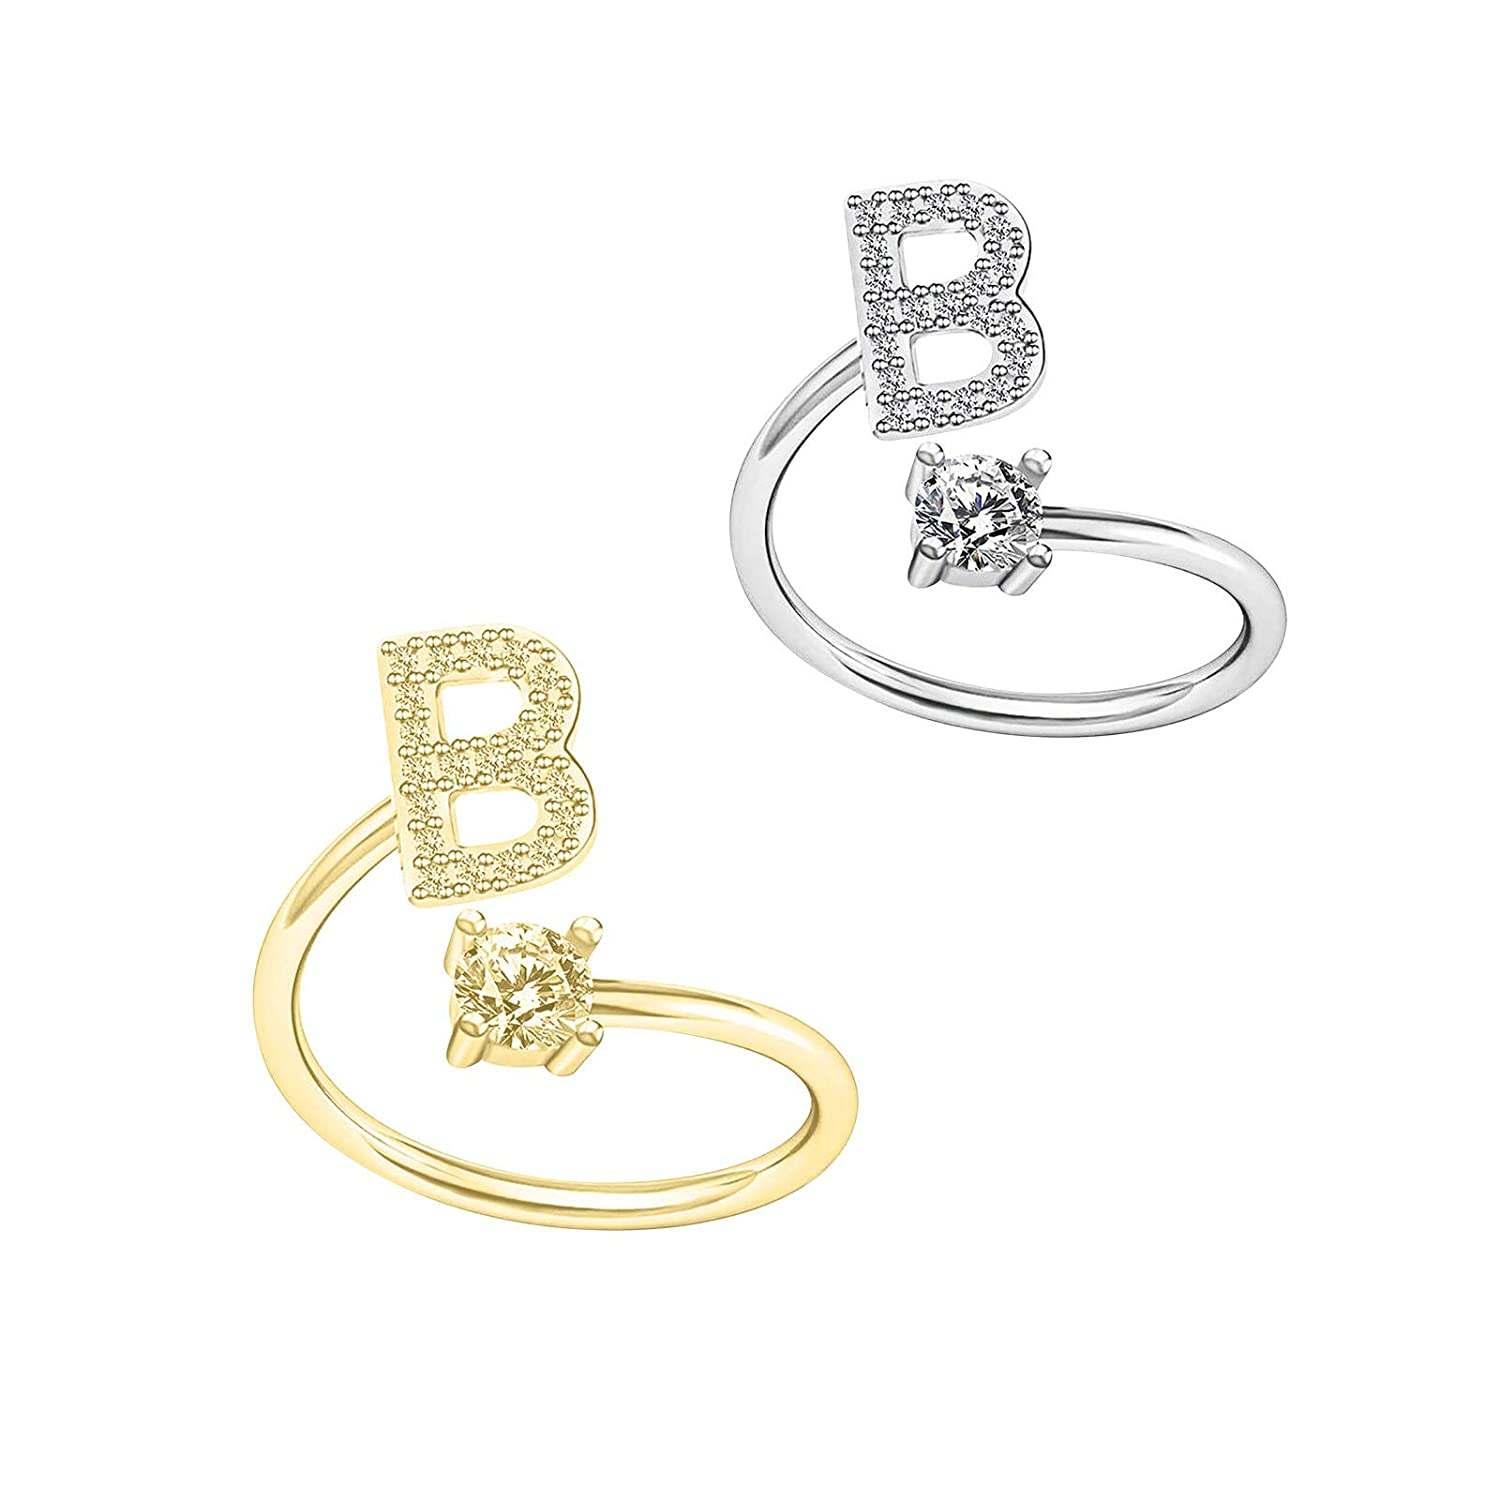 YINZI 1Pair 925 Ring 26 English Letter Ring Solid Color Rhinestone Diamond Carving Couple Friend Ring Alphabet Wedding Band Couple Ring Opening Adjustable Ring Jewelry Accessories (One, B)